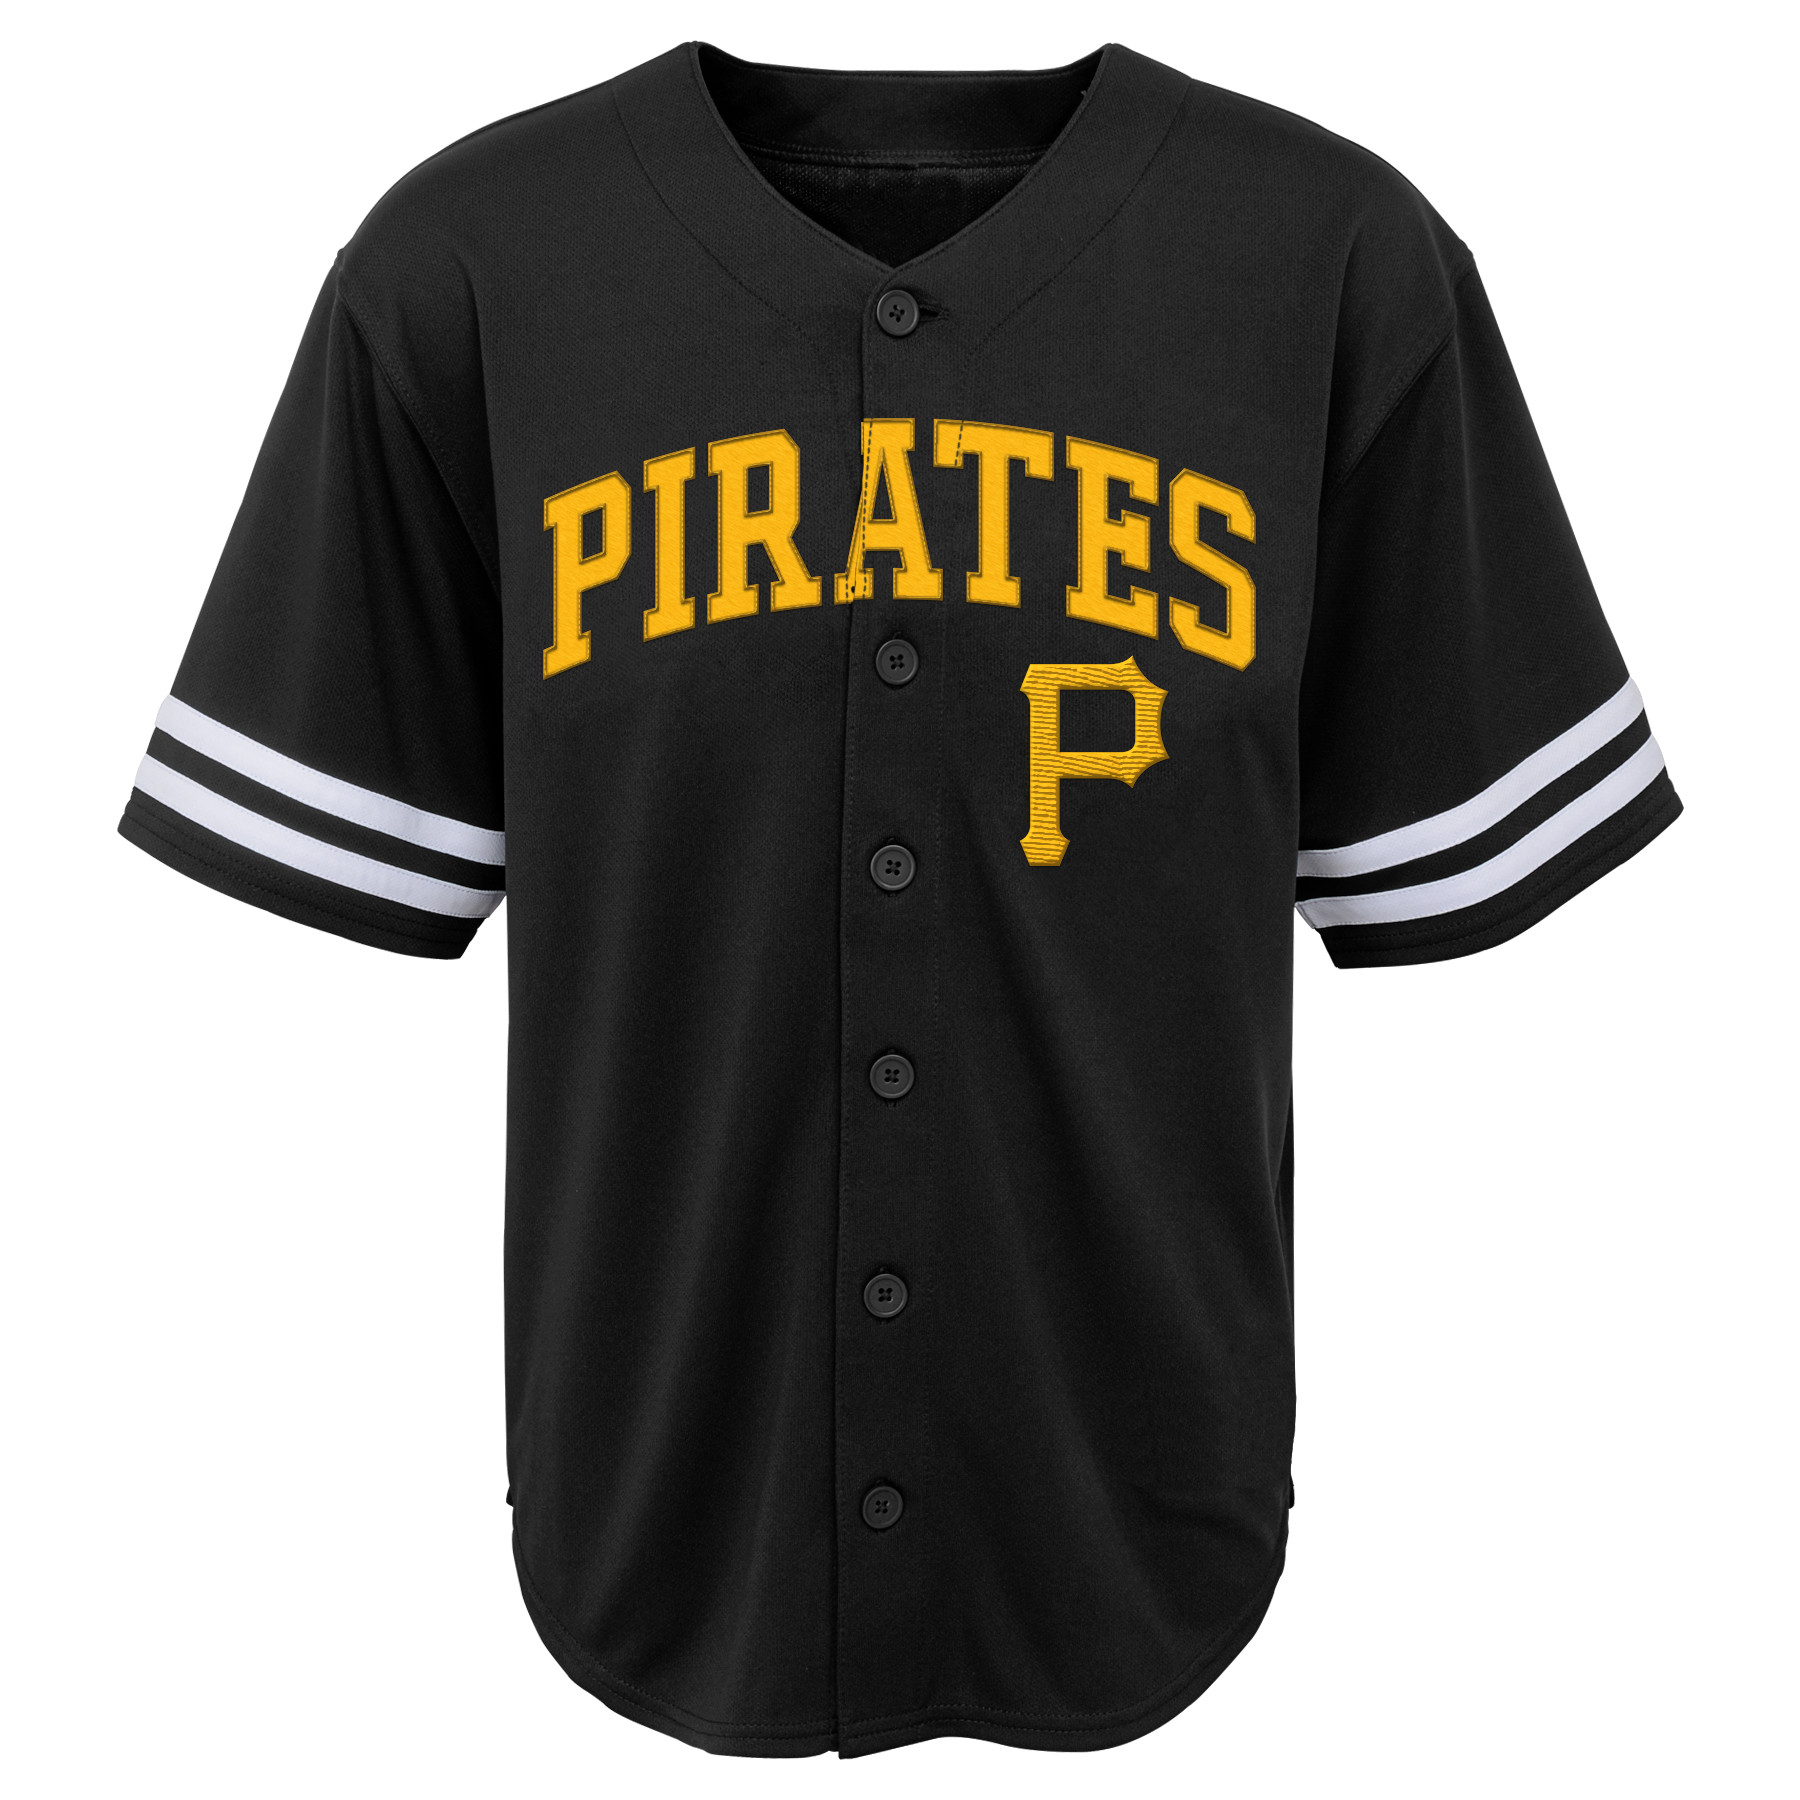 MLB Pittsburgh PIRATES TEE Short Sleeve Boys Fashion Jersey Tee 60% Cotton 40% Polyester BLACK Team Tee 4-18